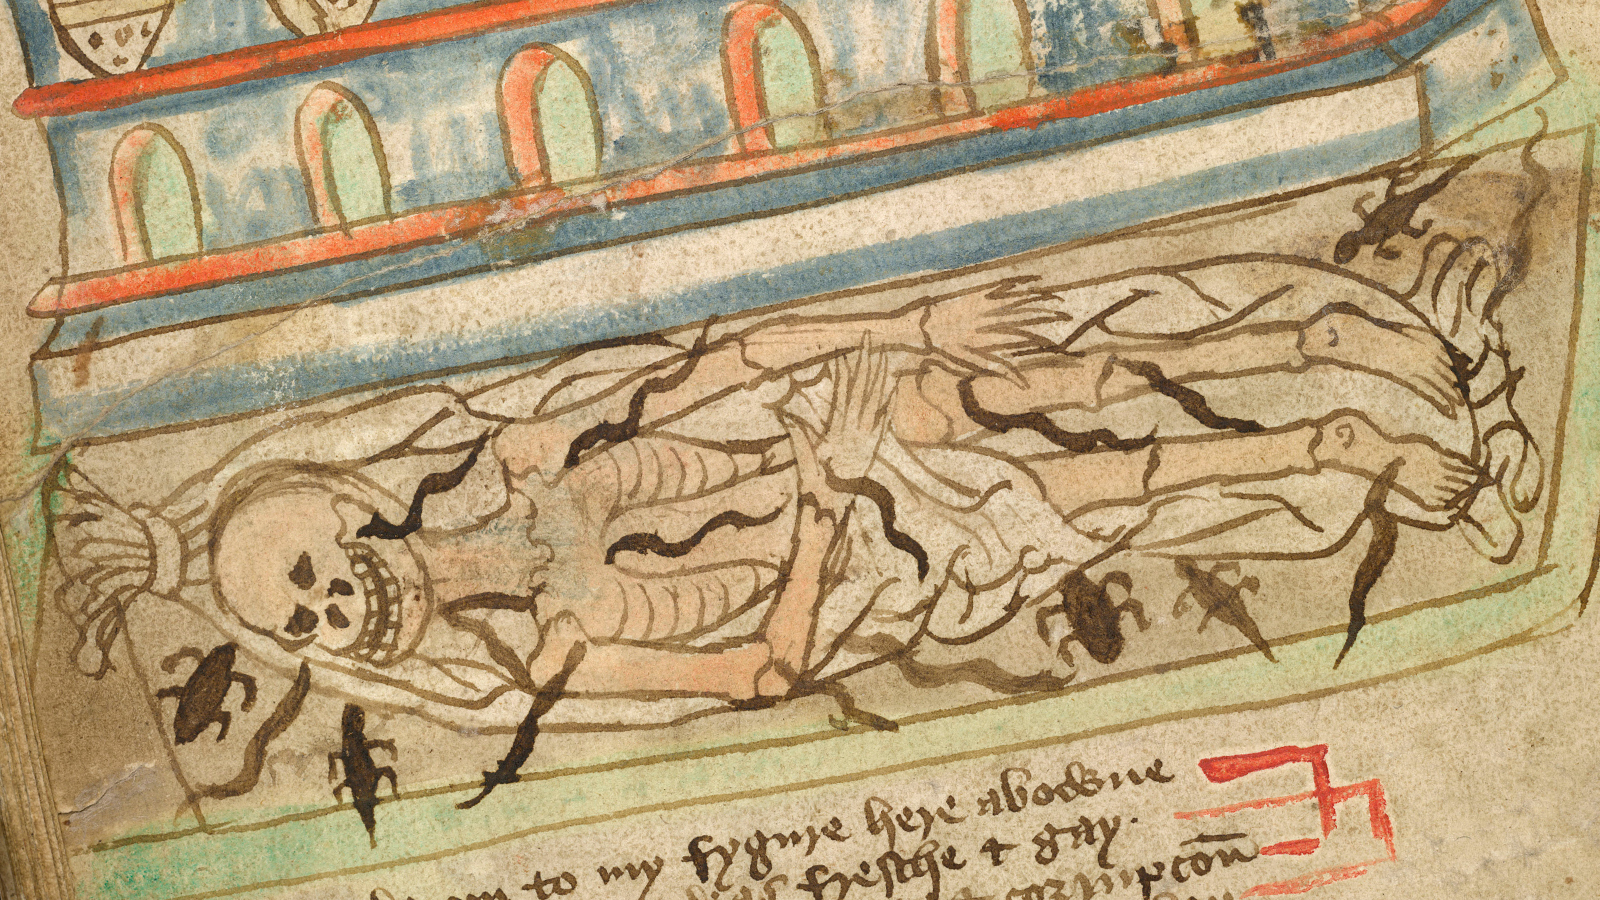 Death and the afterlife: how dying affected the living